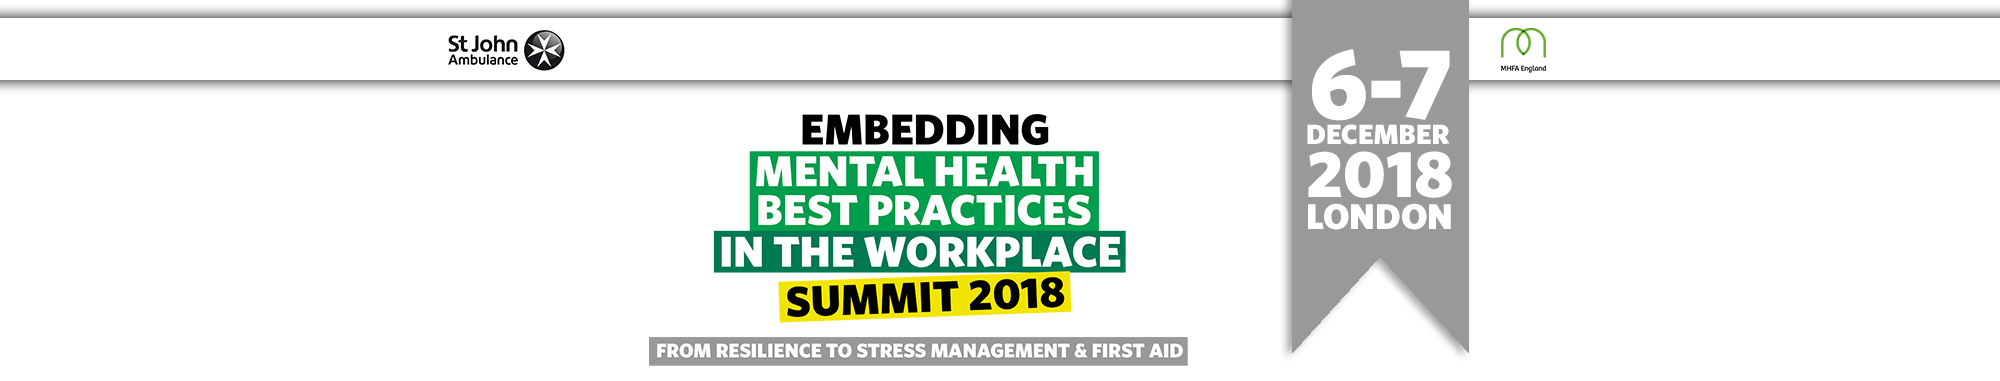 Embedding Mental Health Best Practices in the Workplace Summit 2018